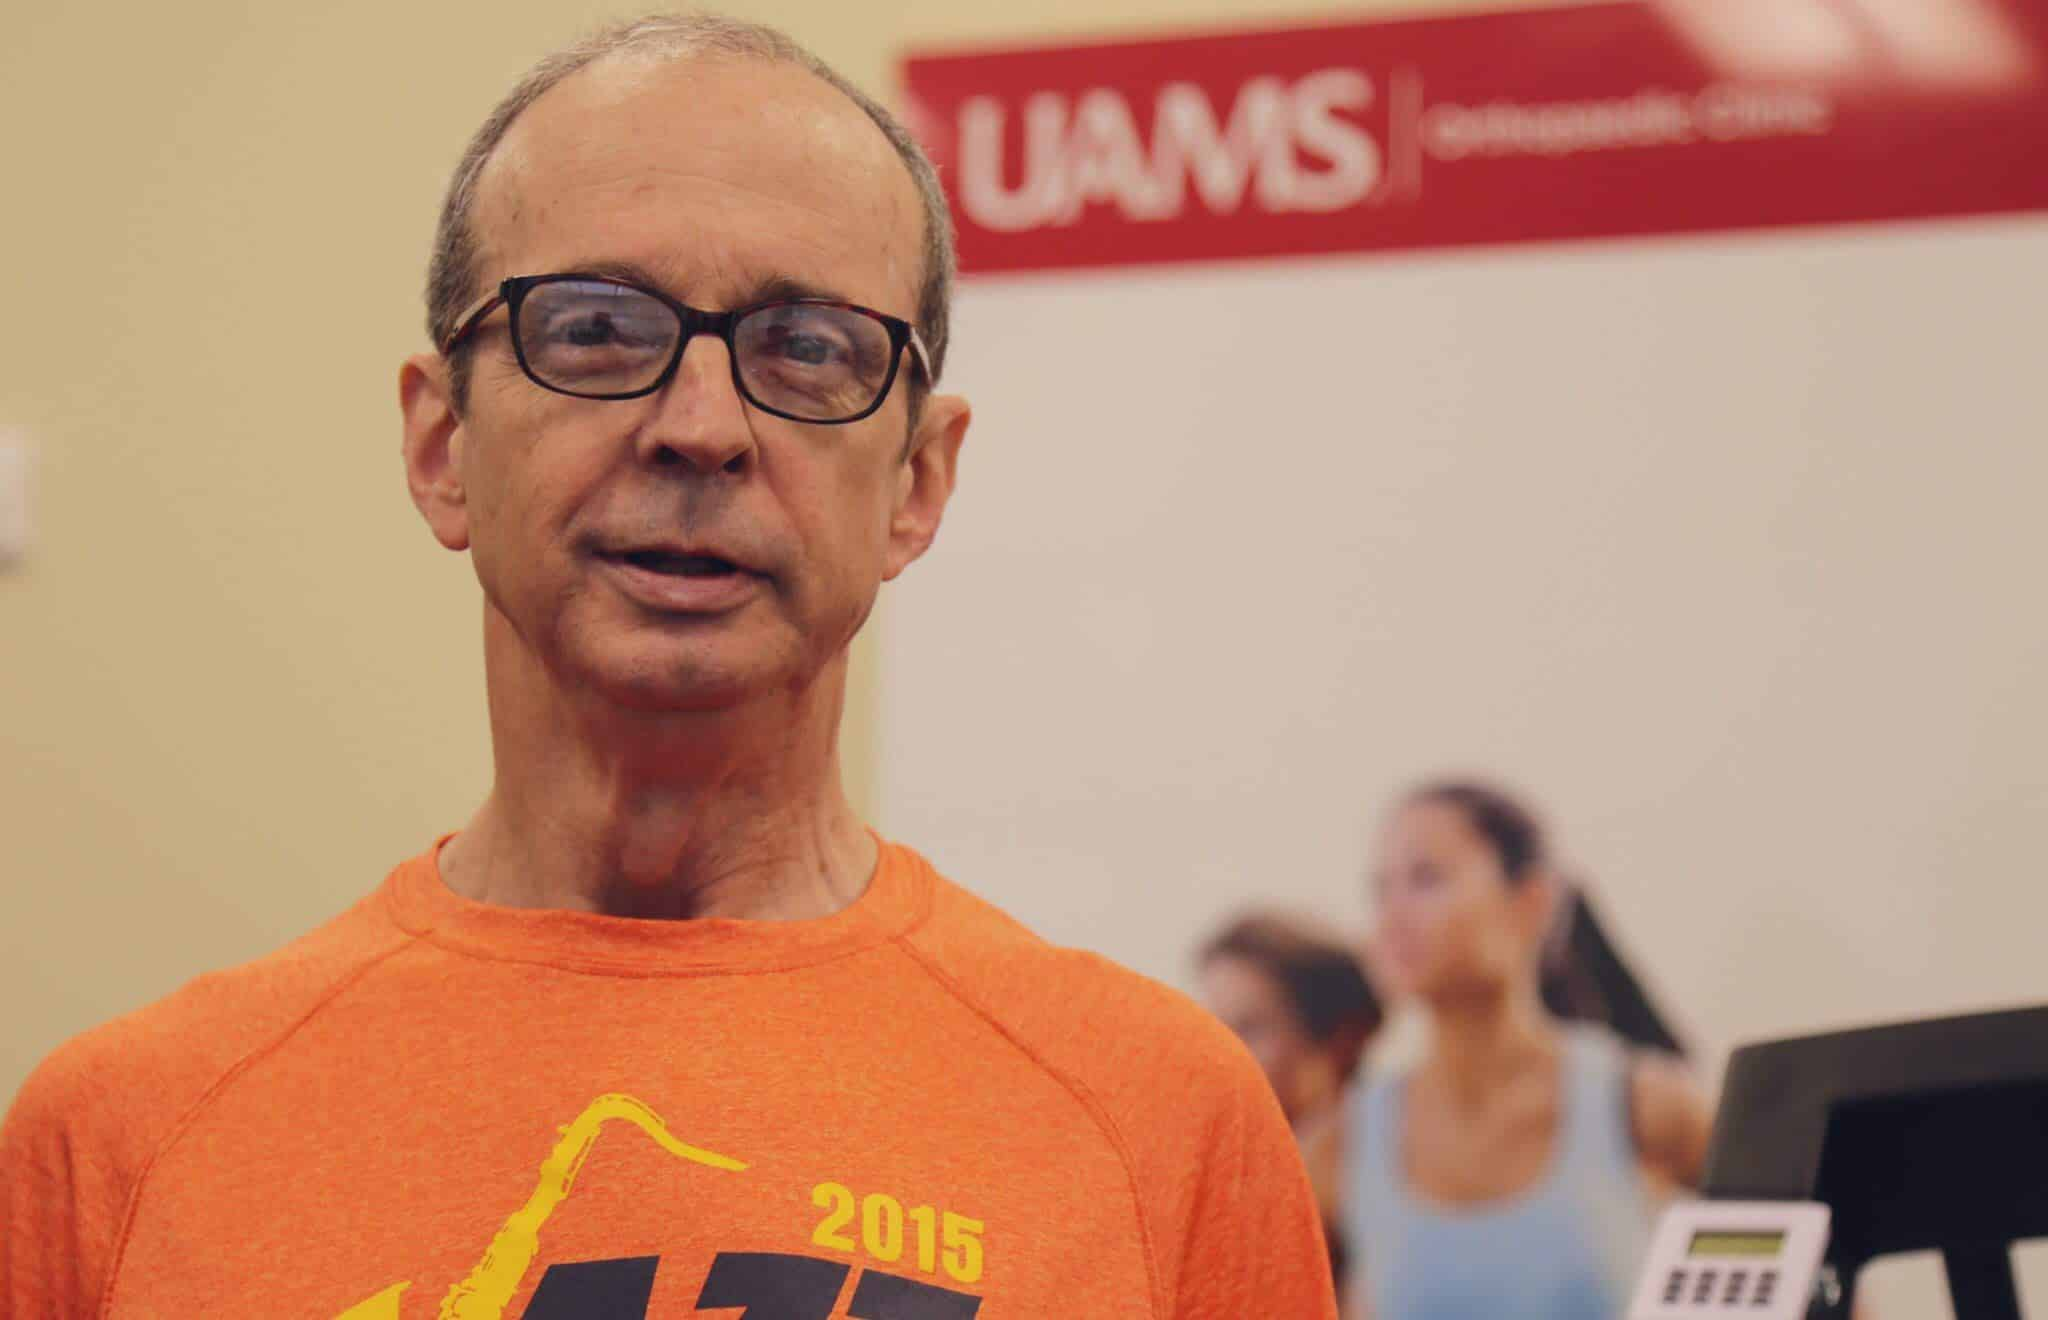 Ted Holder is training for the Boston Marathon in April.